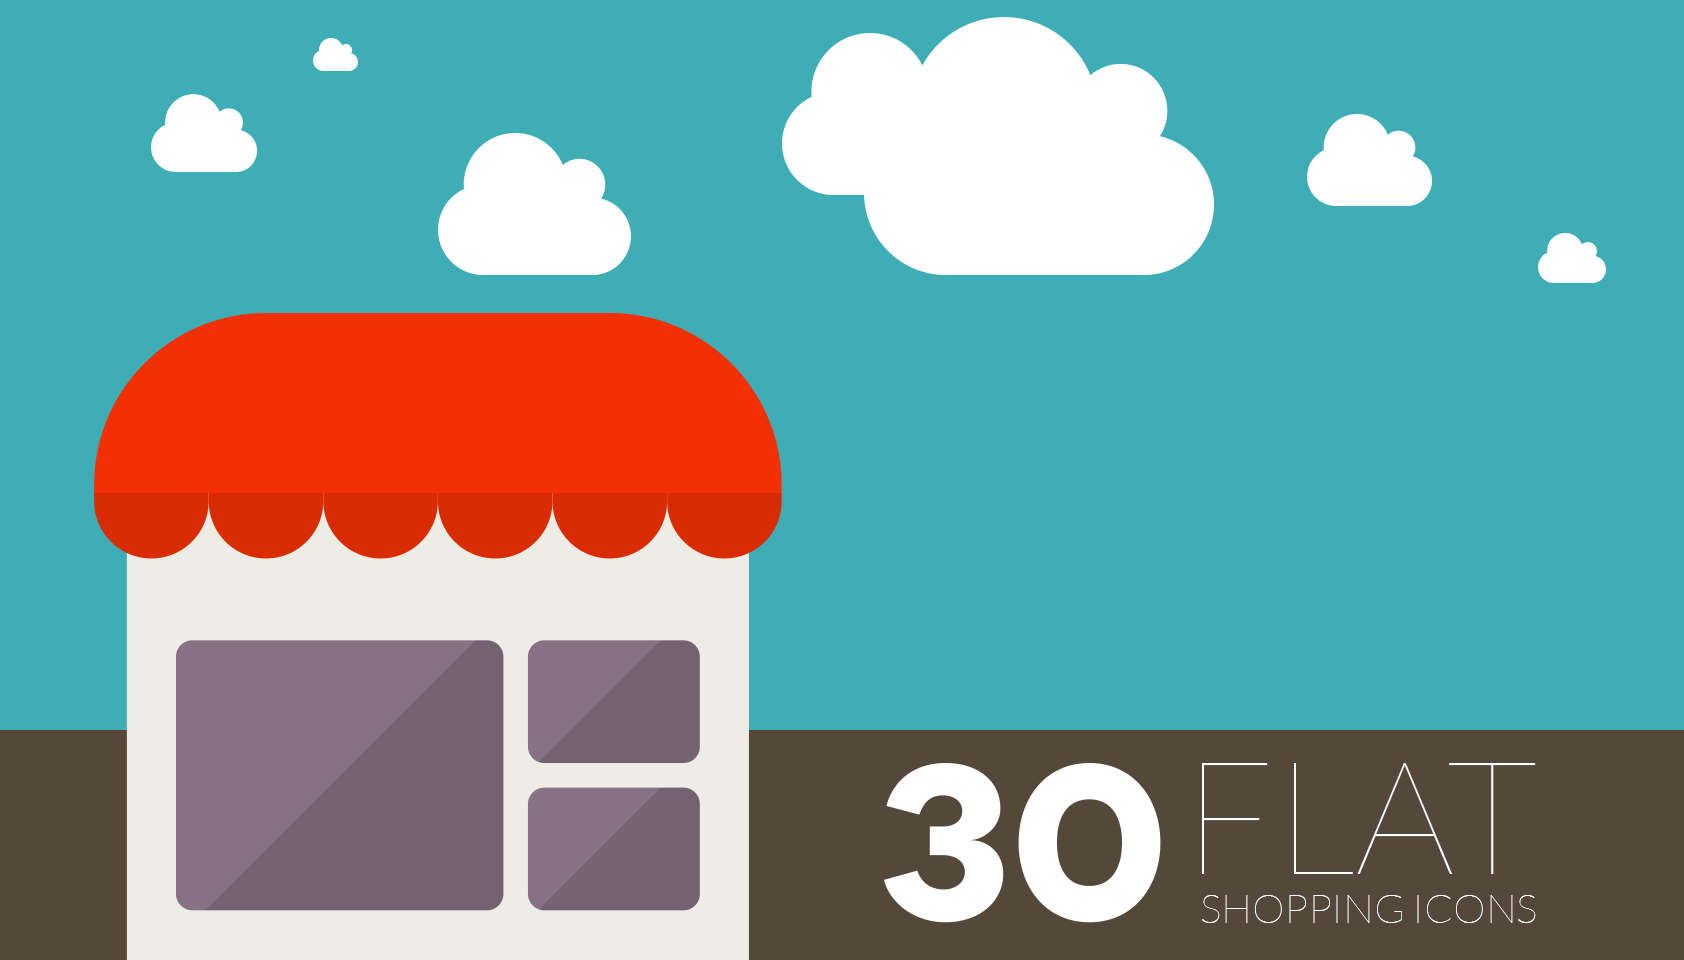 Free download: 30 flat shopping icons